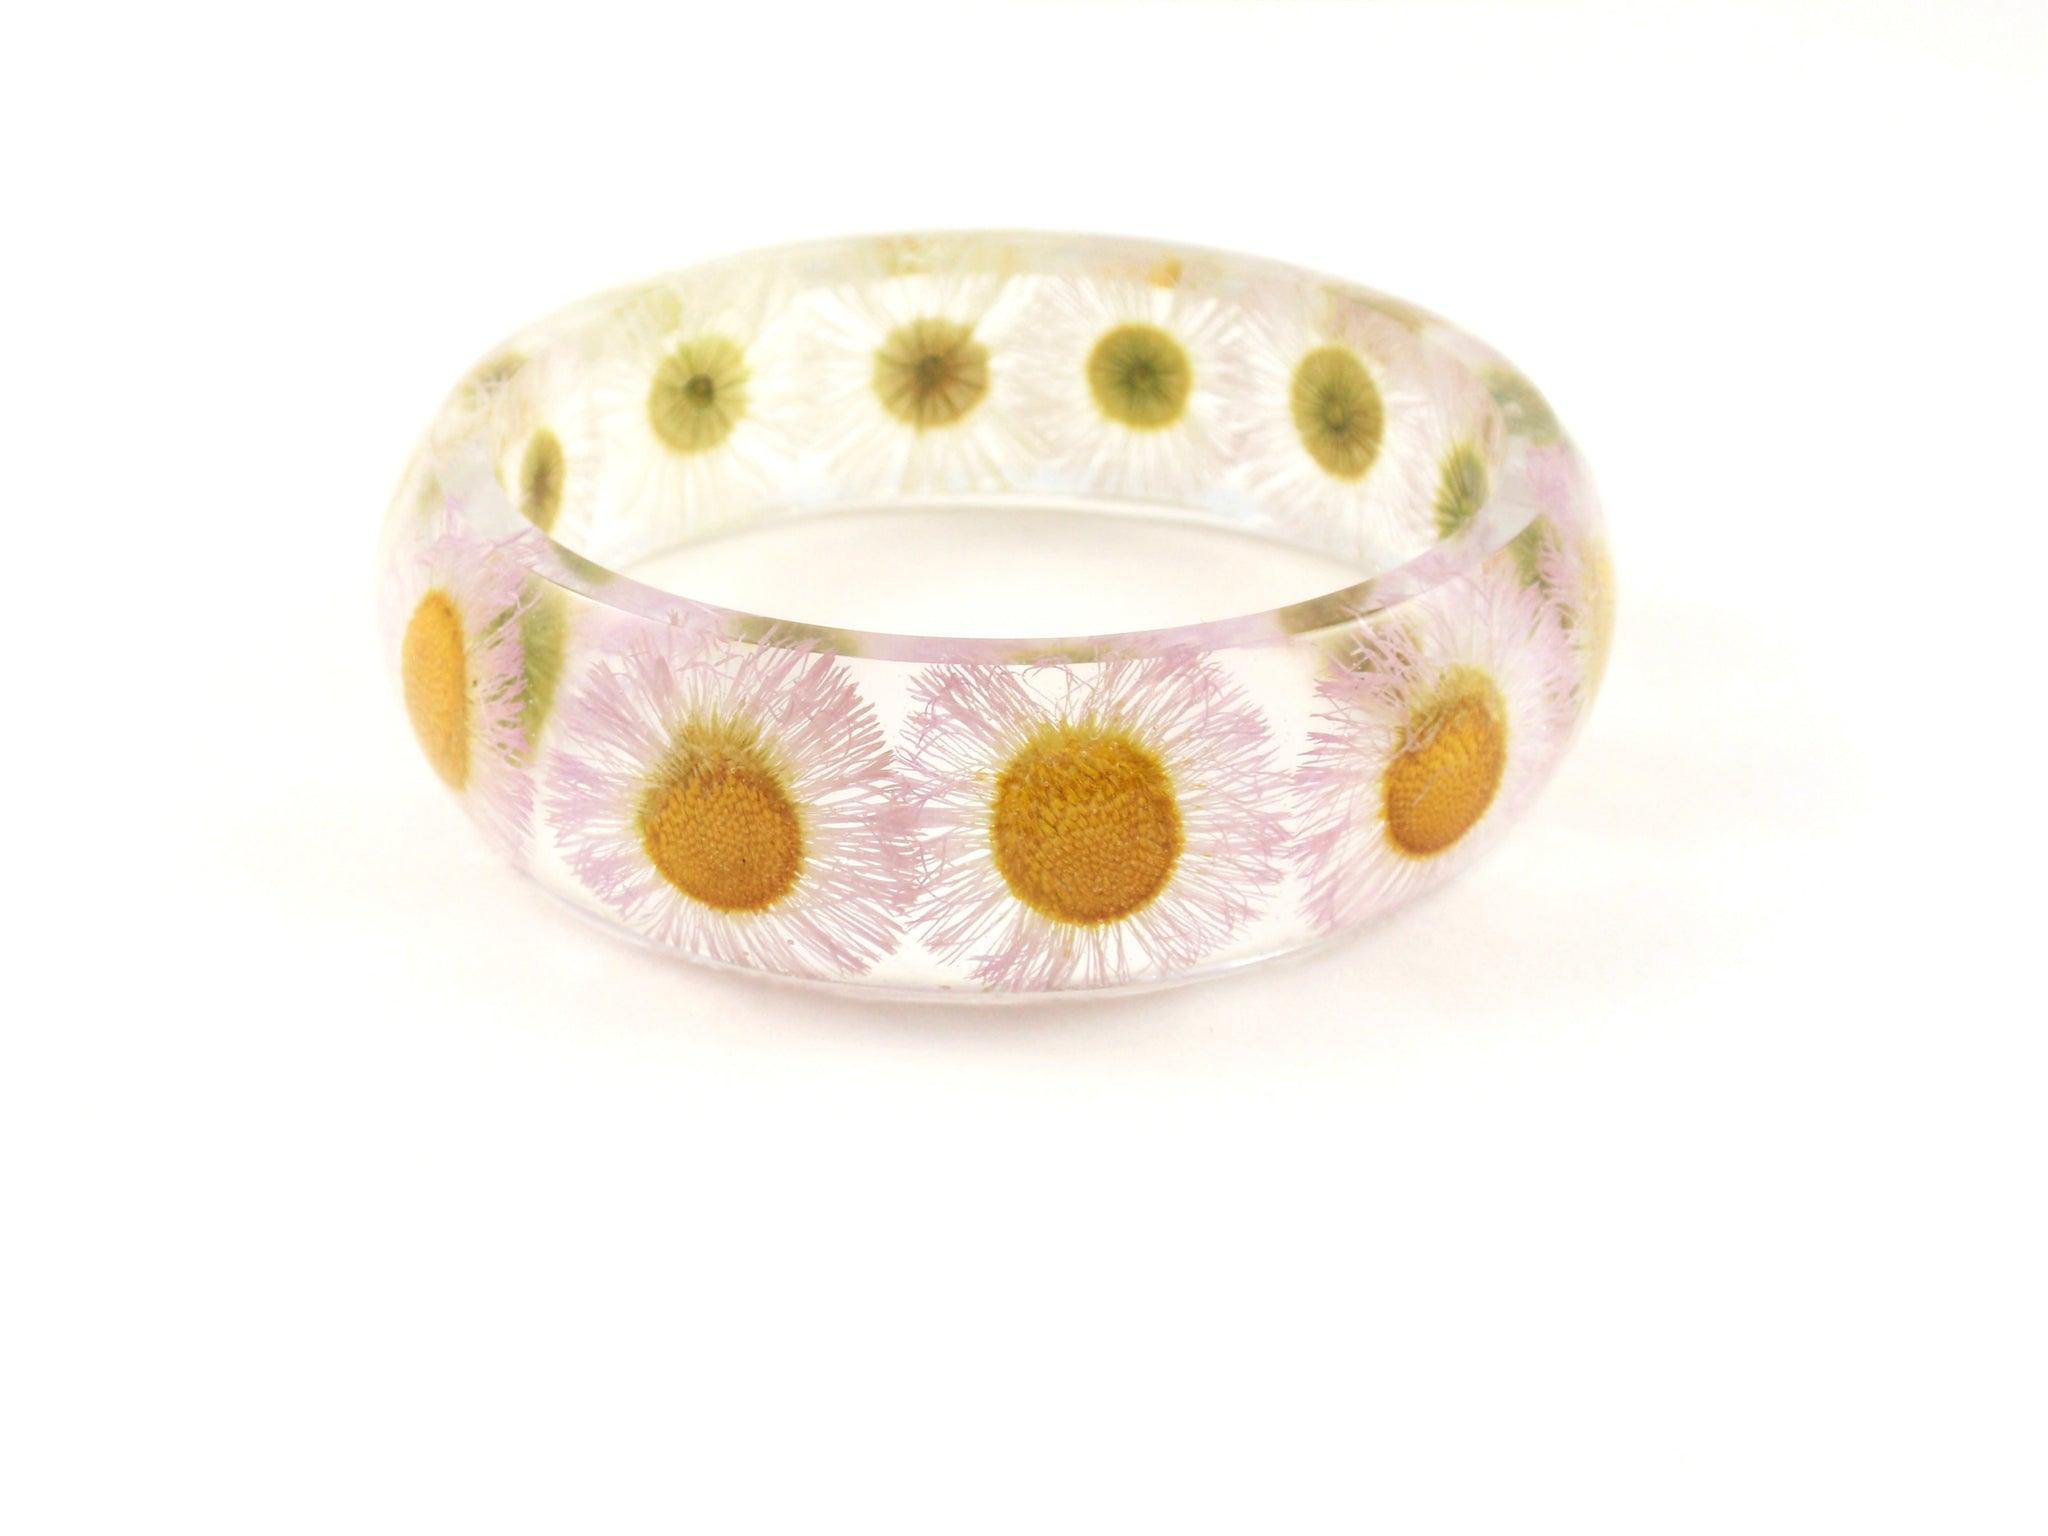 Real Daisy botanical bangle Bracelet, Eco Resin flower Bracelet